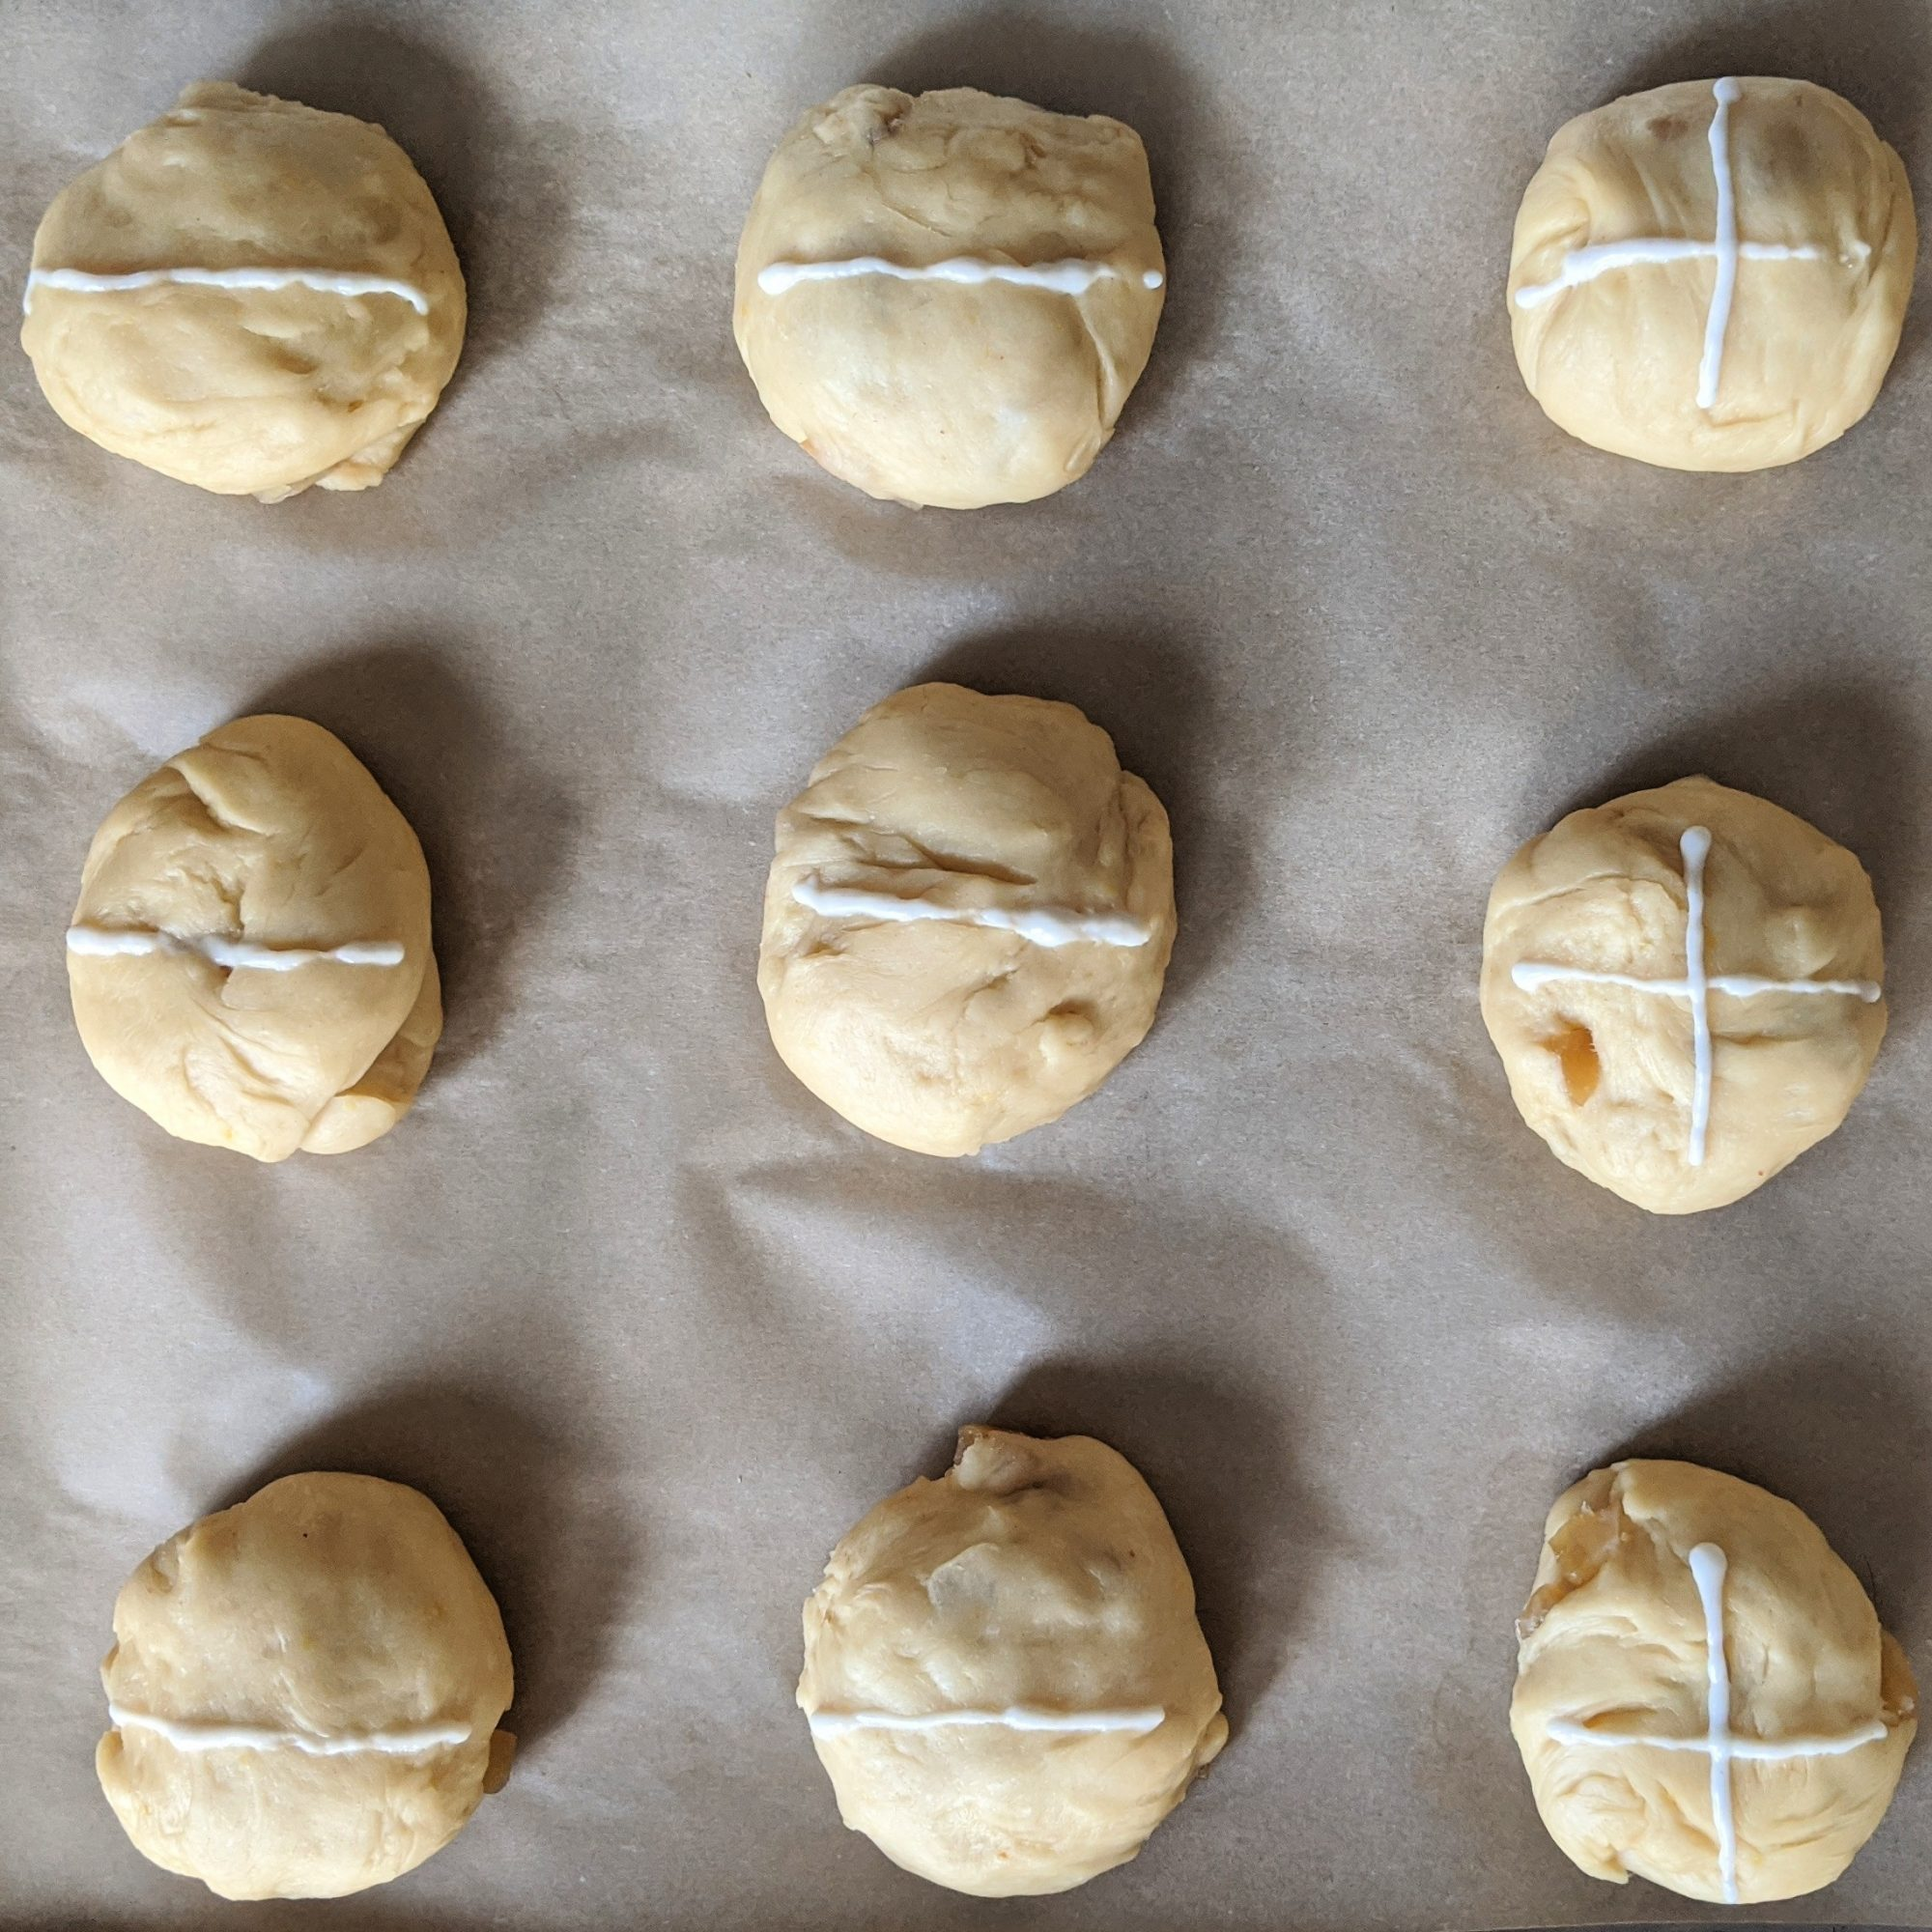 hot cross buns with crosses piped on